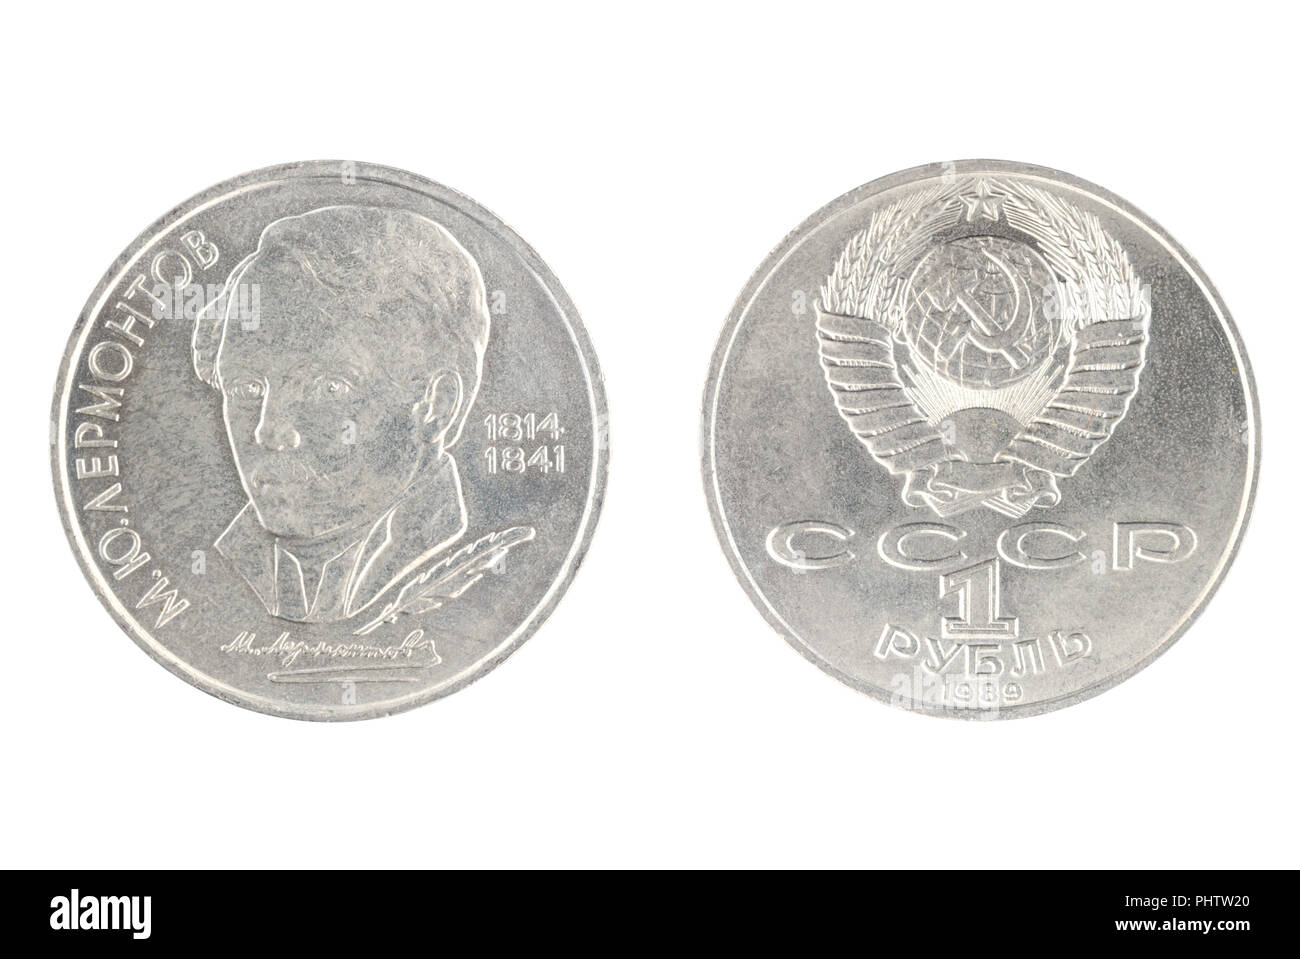 Set of commemorative the USSR coin, the nominal value of 1 ruble.from 1989, shows Mikhail Lermontov, russian poet, novelist, playwright, painter. Isol - Stock Image